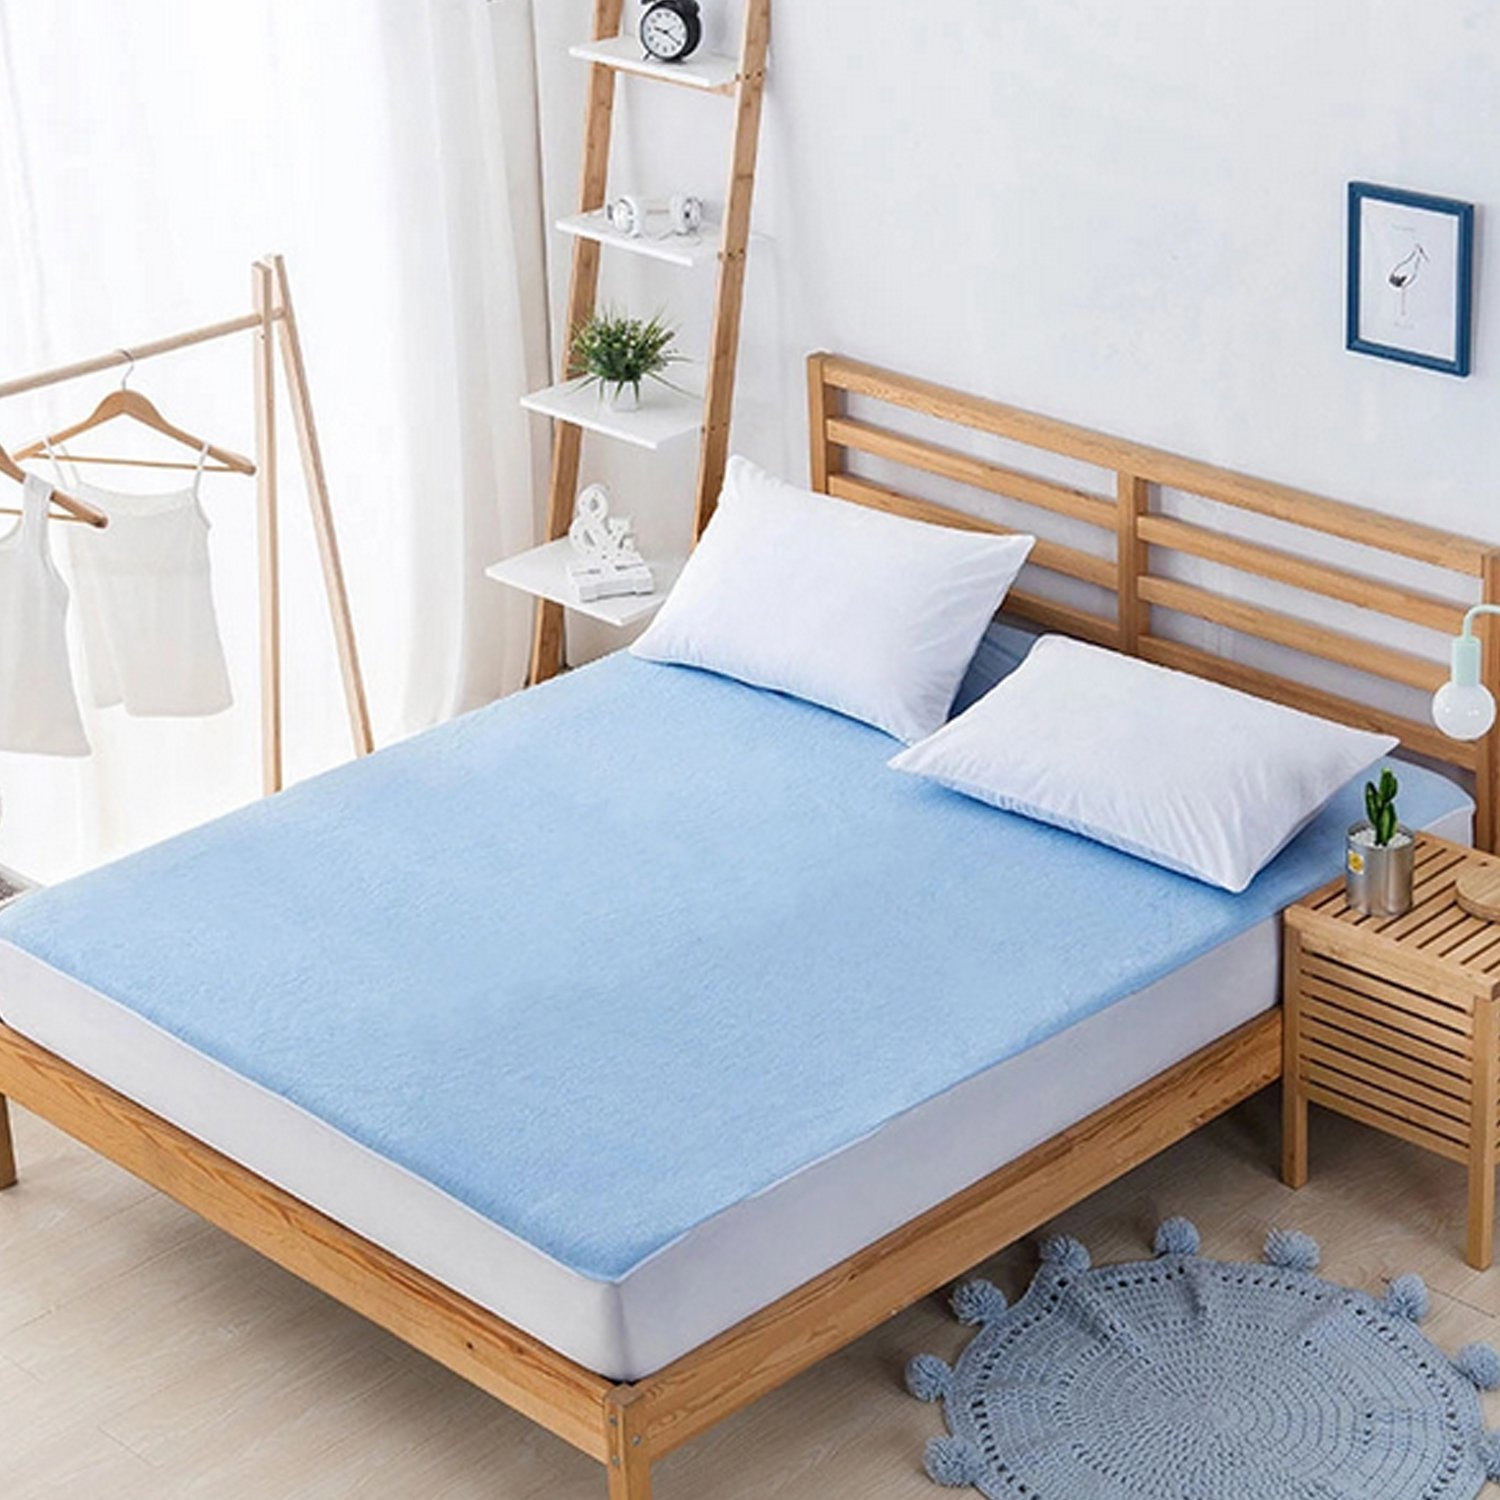 Migavan Cotton Breathable Anti-mite Mattress Protector Cover for Family Bedroom Hotel Dormitory 150x200x30CM Blue